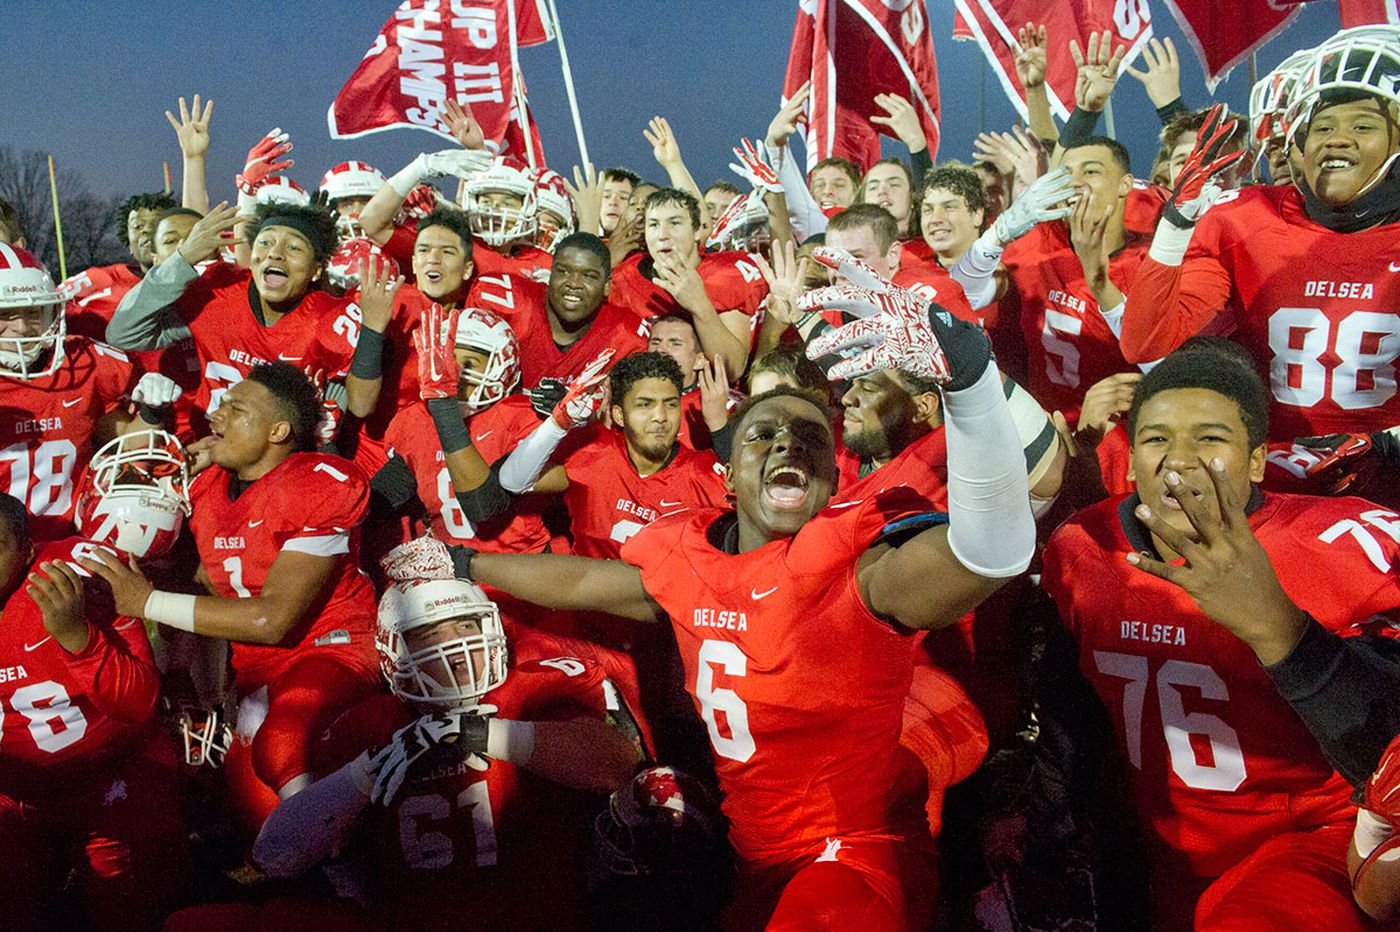 Delsea rides defense, run game to South Jersey 3 title